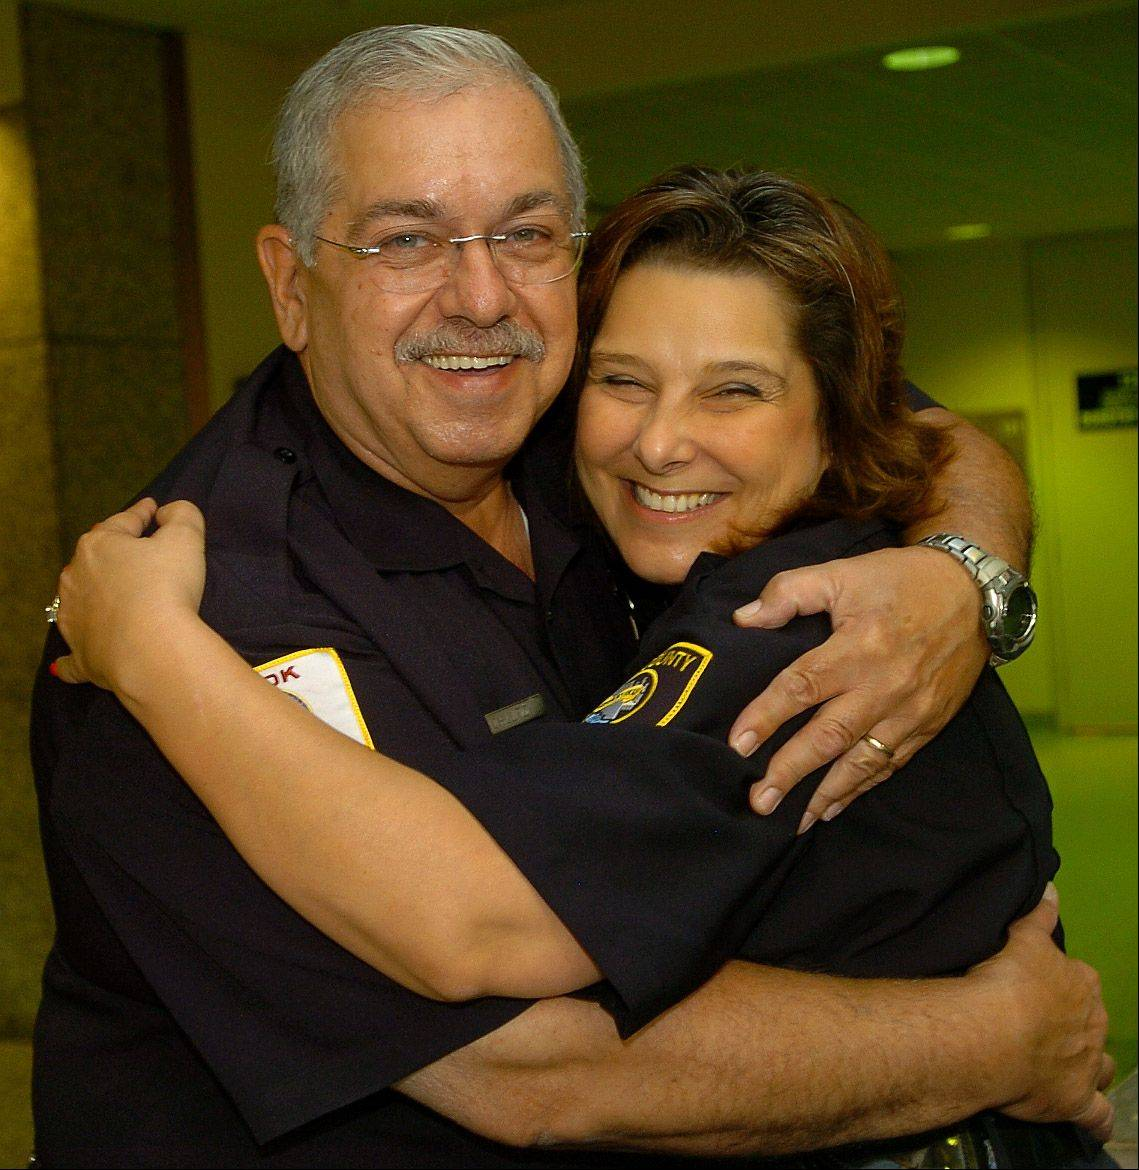 Cook County Sheriff's Deputy Stan Schultz, retiring after 46 years in law enforcement, gets a hug from Deputy Linda Bartolomeo, on his final day of work at the courthouse.